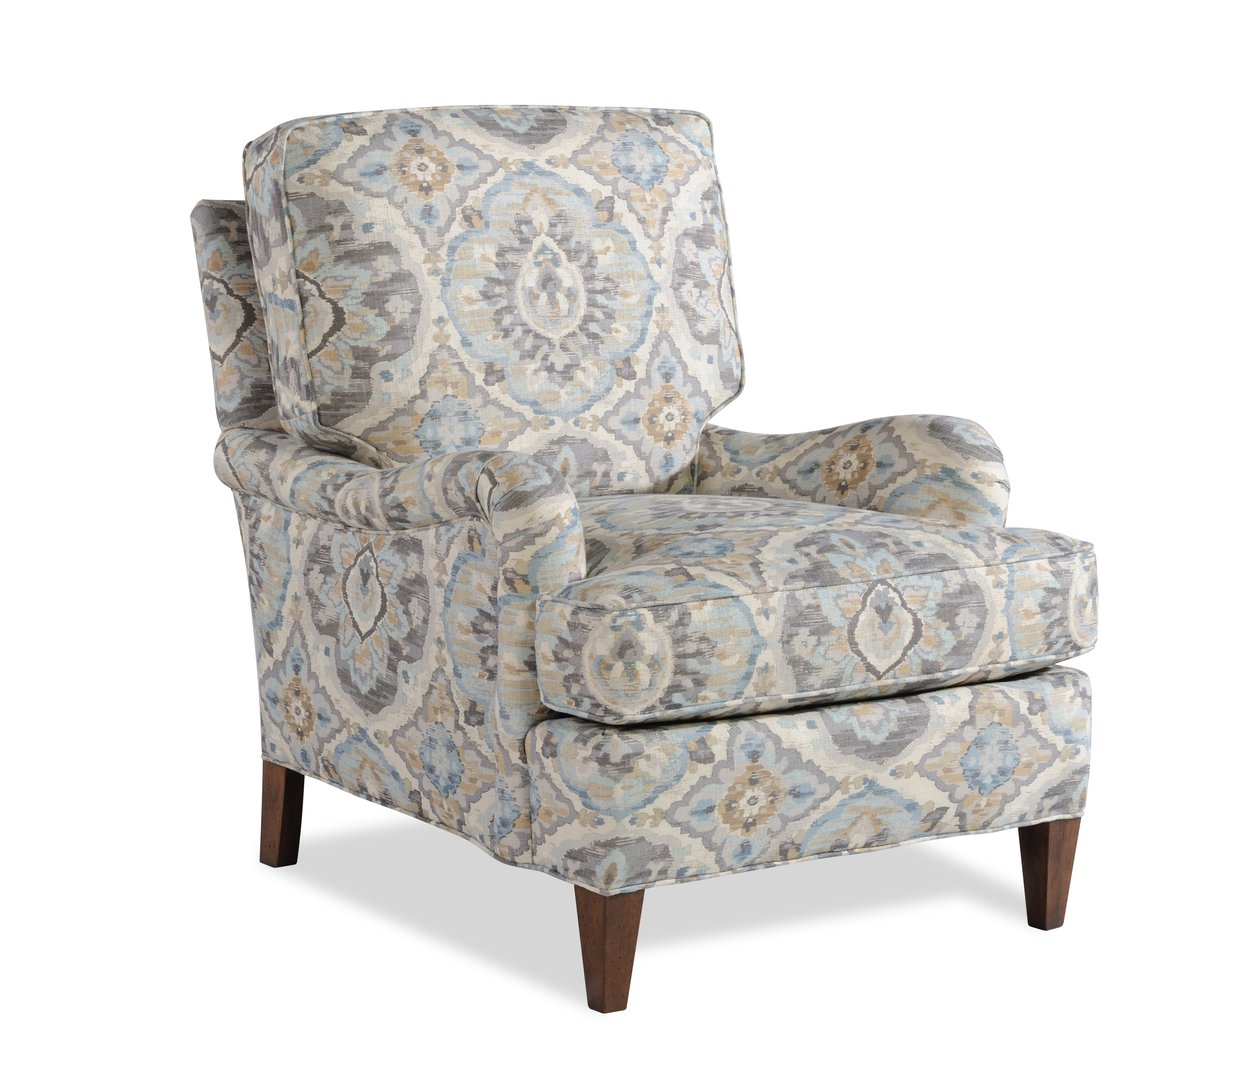 Plymouth Chair Image